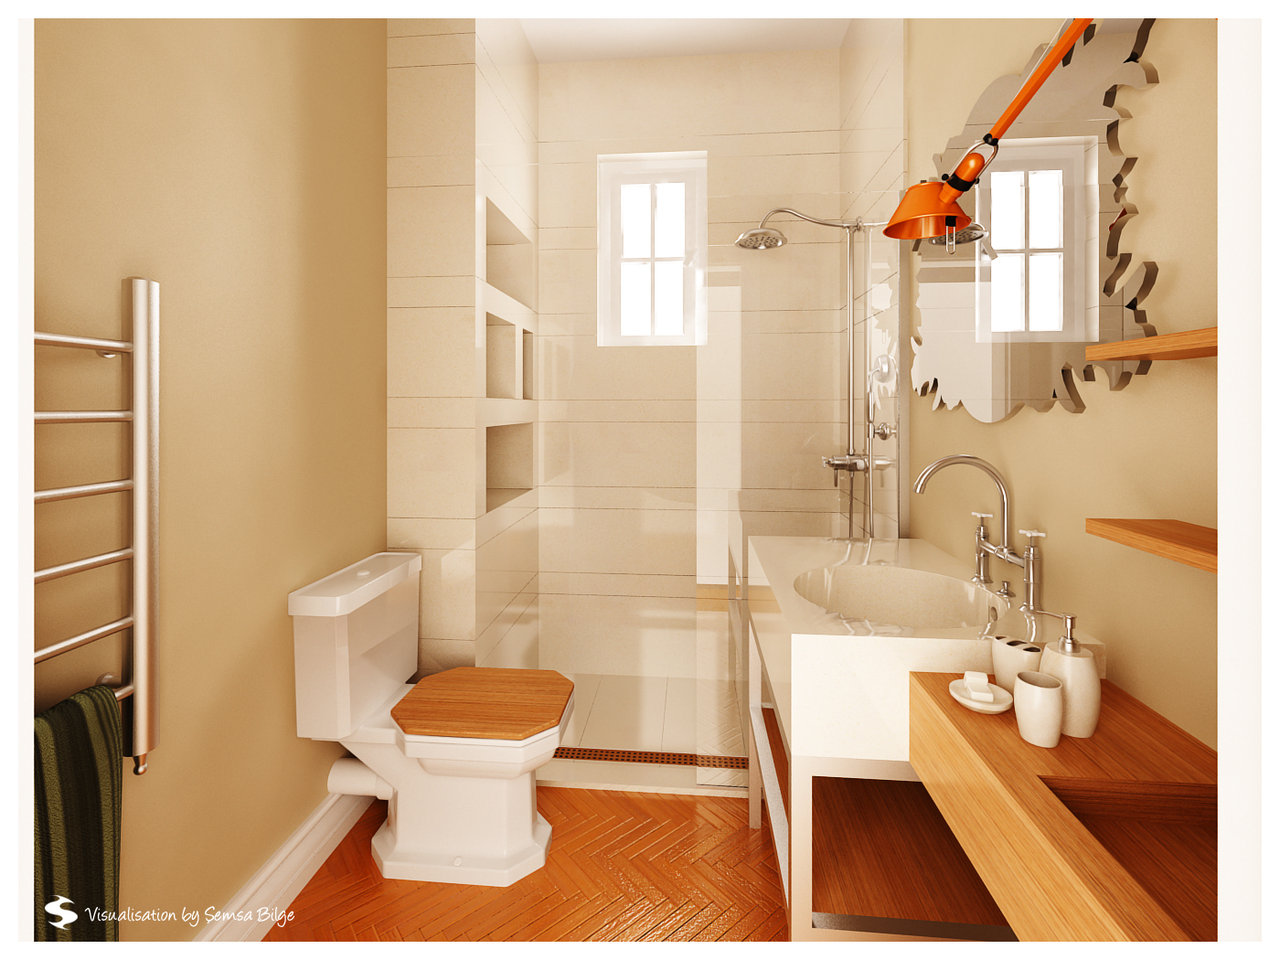 Fabulous Small Bathroom Decorating Ideas On a Budget 1280 x 960 · 201 kB · jpeg